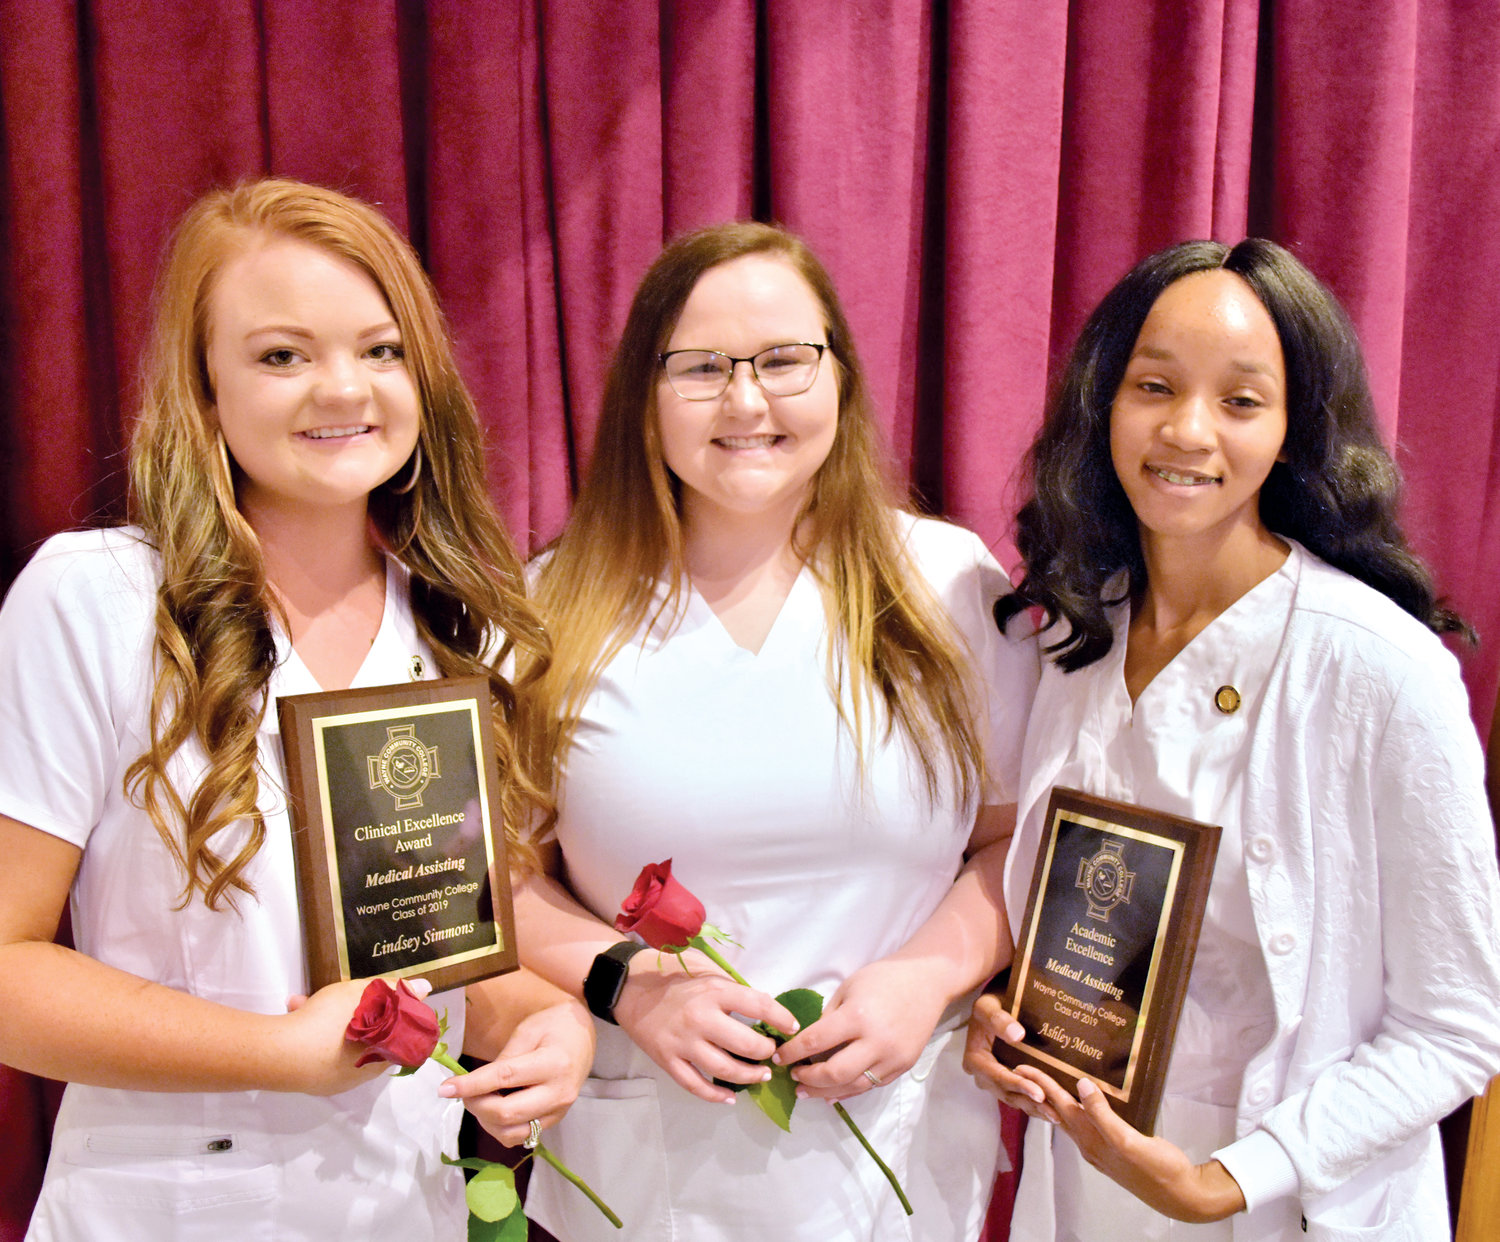 Wayne Community College Medical Assisting Class of 2019 award winners are, from left, Lindsey Simmons, Clinical Excellence; Kayla Capps, Outstanding Student; and Ashley Moore, Academic Excellence.